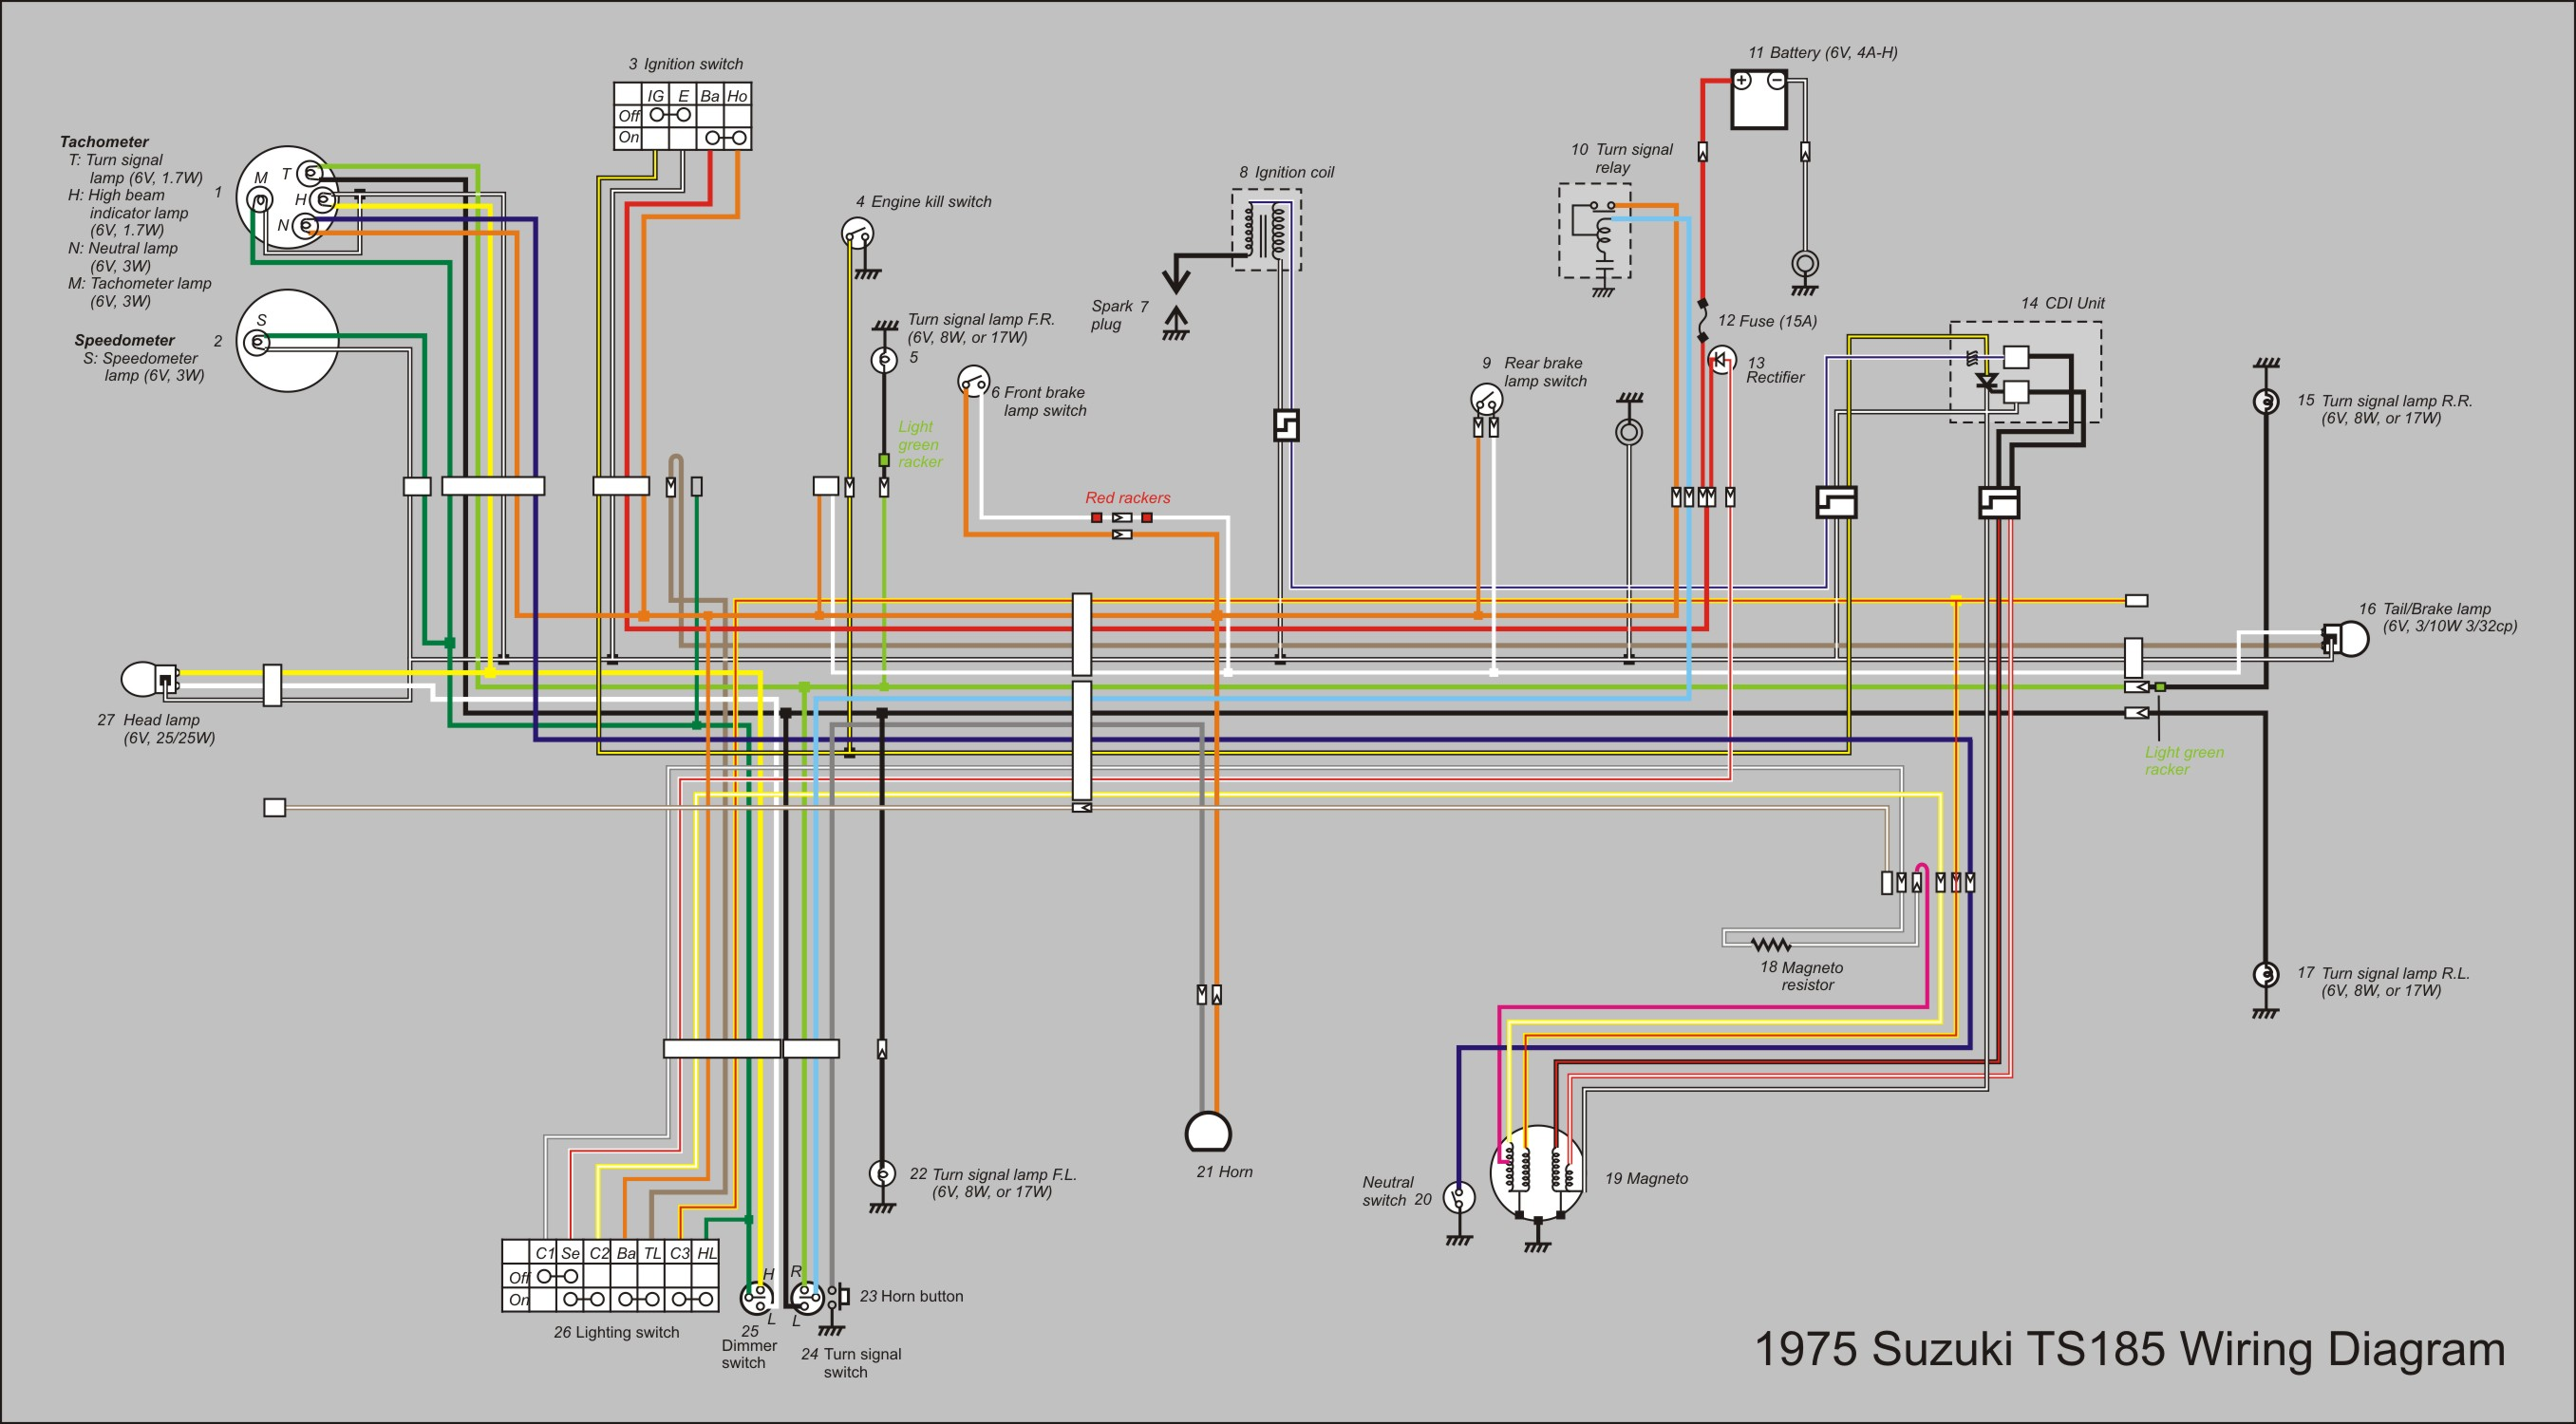 Filets185 Wiring Diagram New Wikimedia Commons Also Electrical Panel Harness